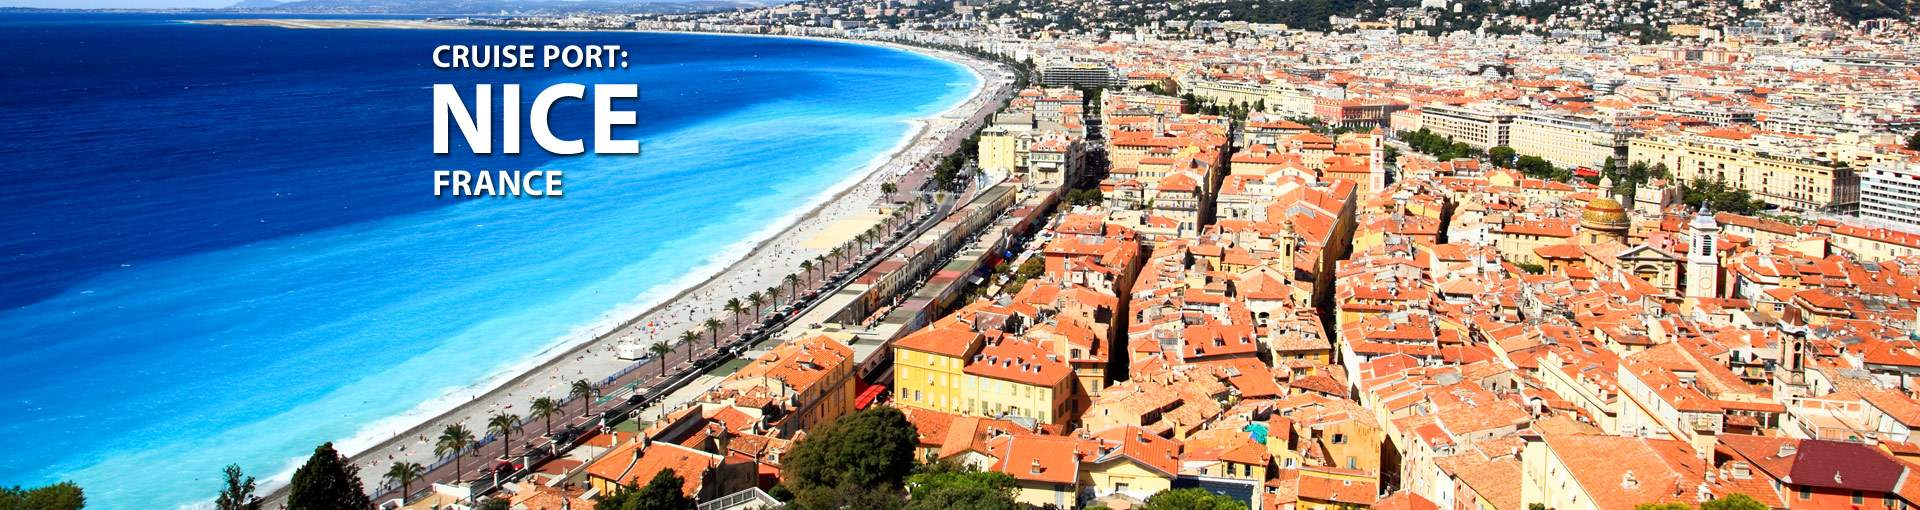 Nice France Cruise Port 2017 And 2018 Cruises From Nice